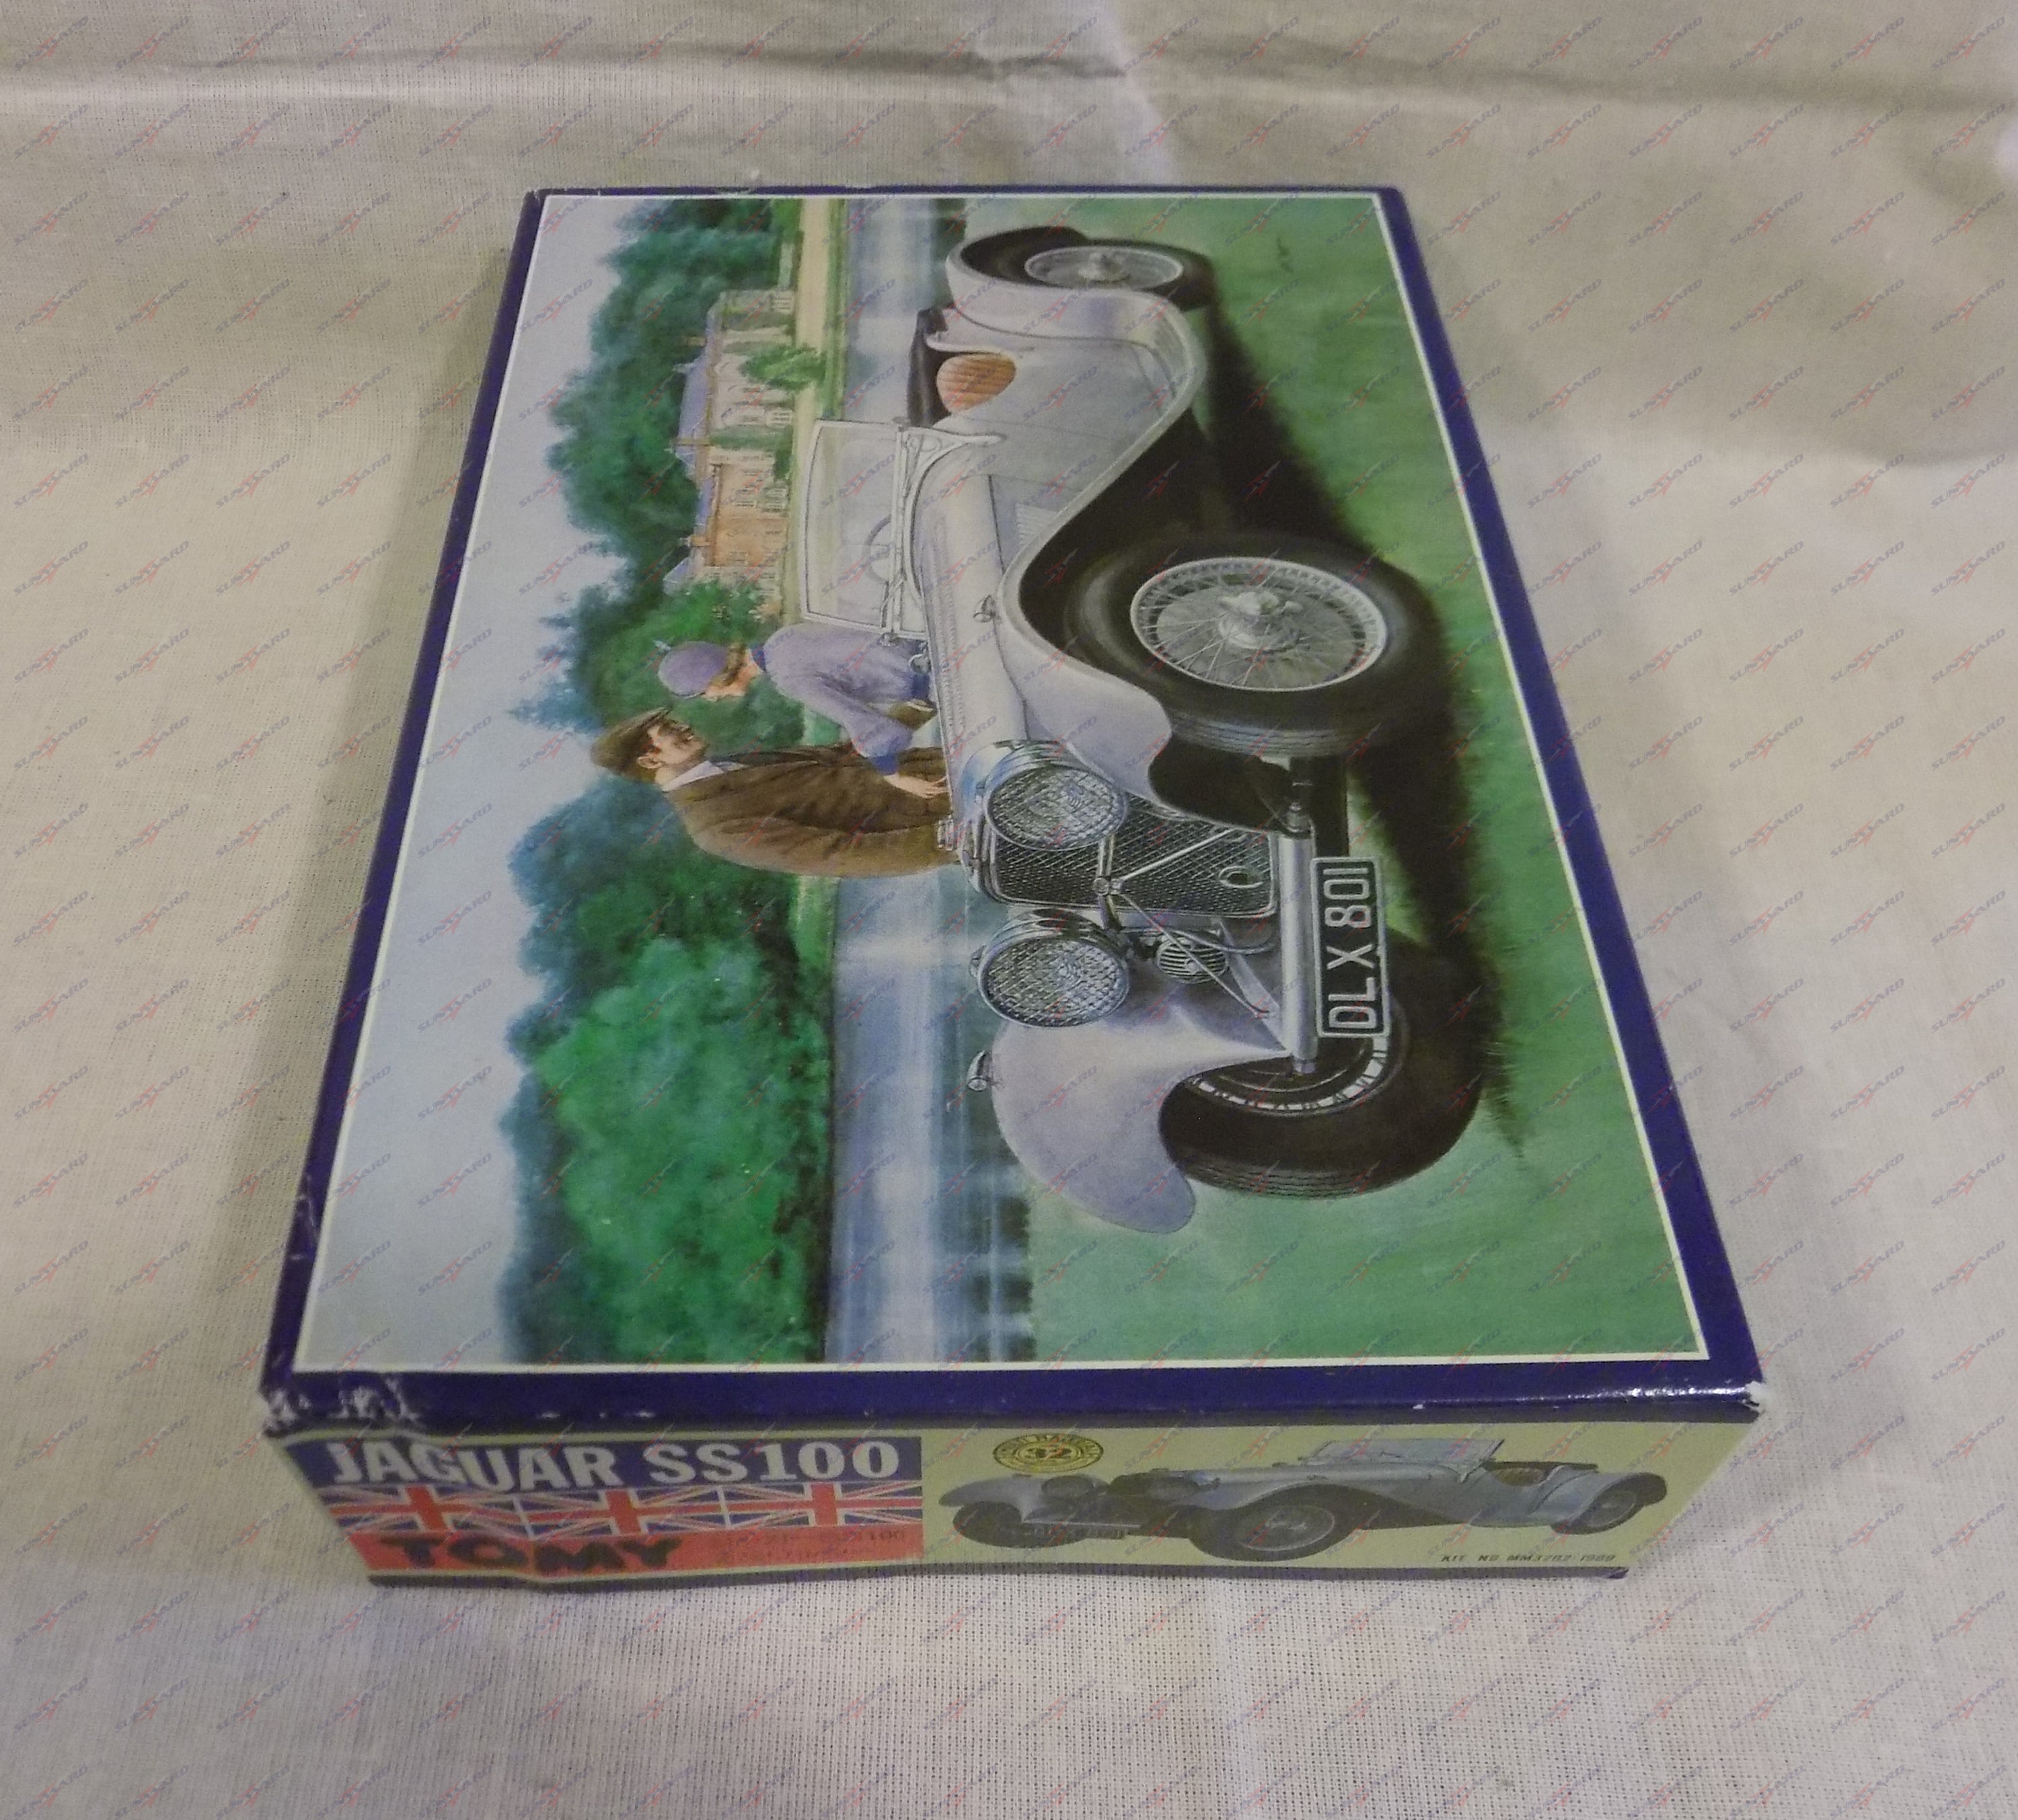 Tomy Jaguar SS100 Model Kit #MM3202-1900 1:32 Scale